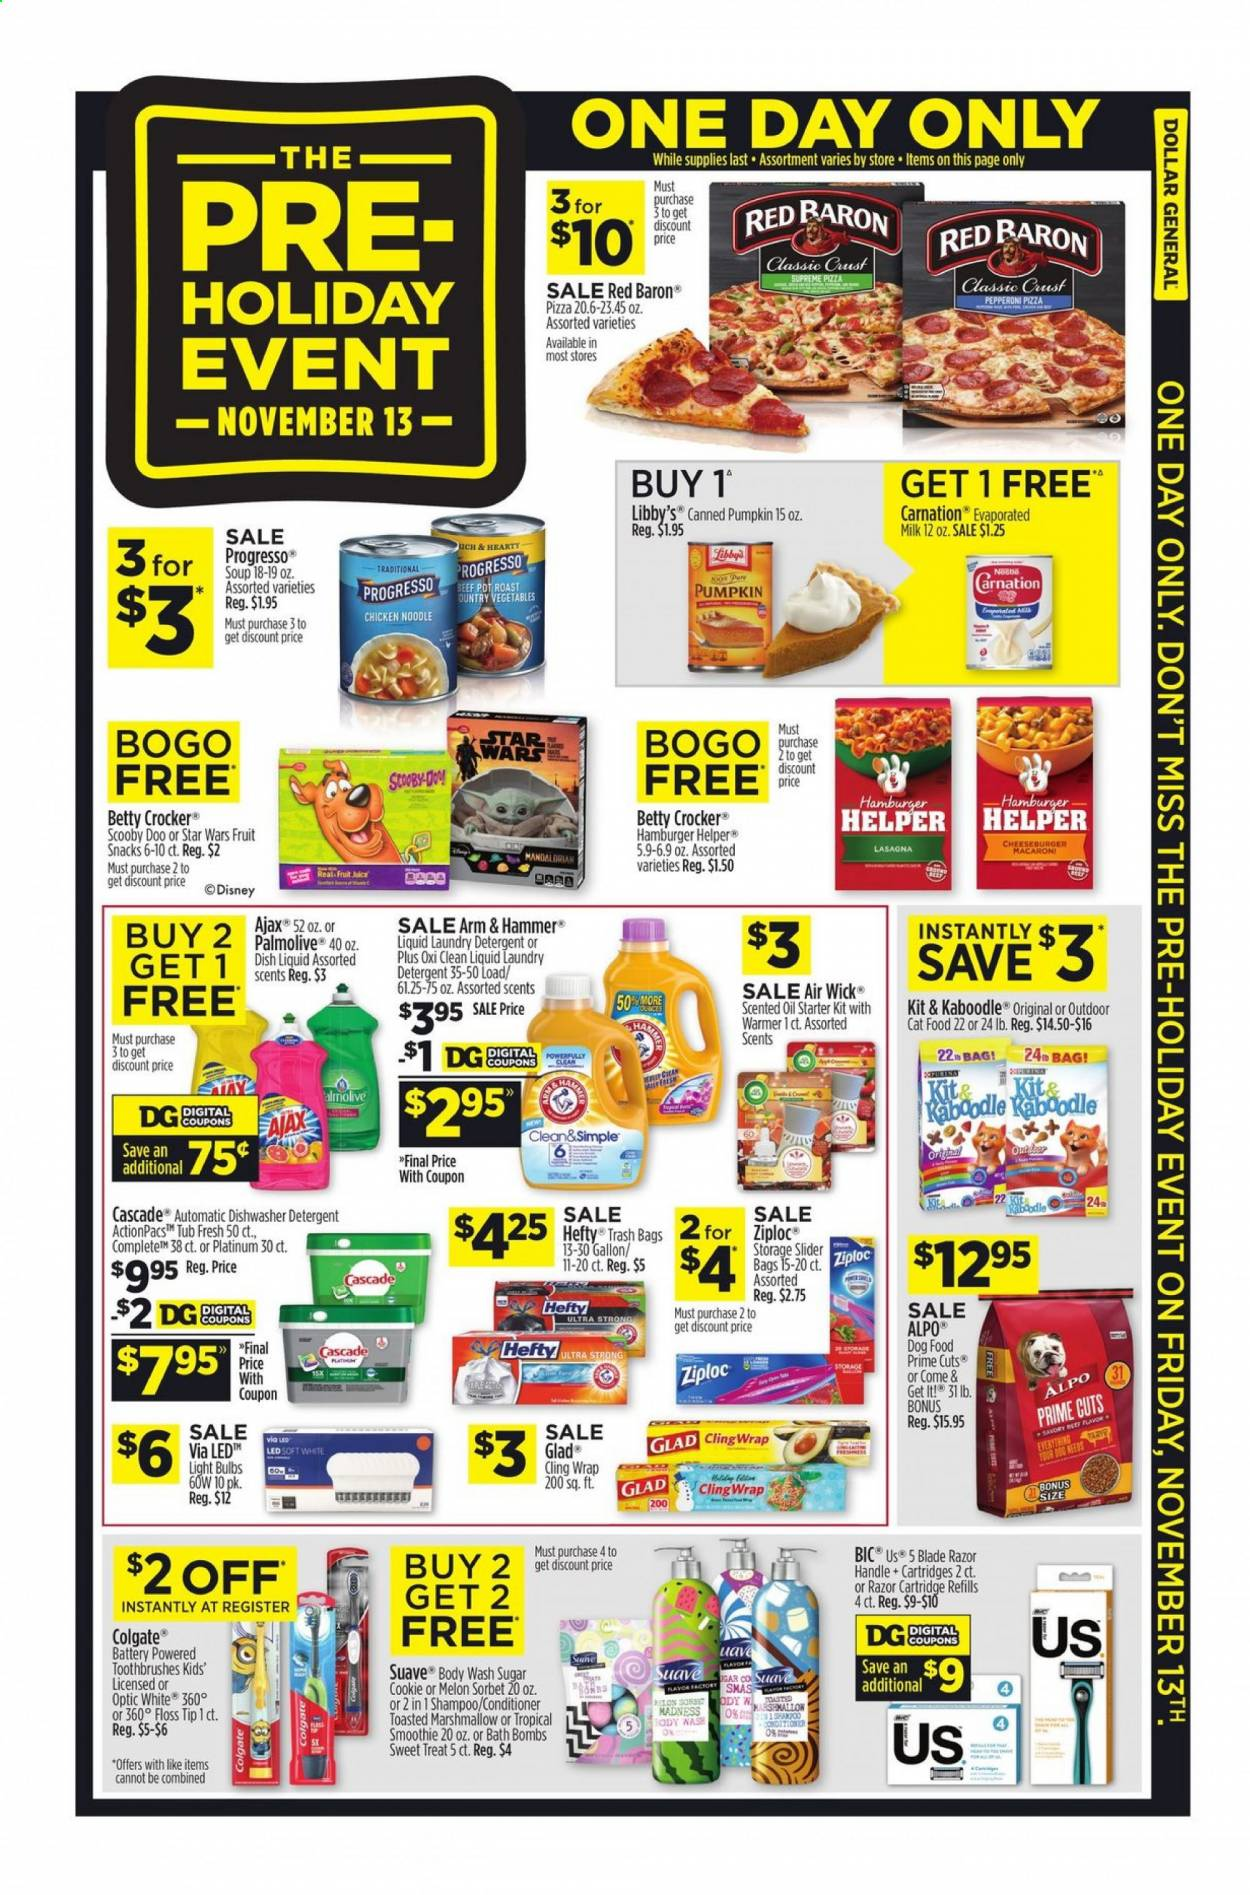 Dollar General Flyer - 11.13.2020 - 11.13.2020 - Sales products - animal food, arm & hammer, bag, bath, battery, beef meat, bic, body wash, bulb, cascade, cat food, conditioner, detergent, dishwasher, disney, dog food, dolce & gabbana, colgate, evaporated milk, light bulb, marshmallows, razor, shampoo, suave, sugar, ziploc, ham, handles, hefty, pizza, pot, pumpkin, chicken, pepperoni, noodle, juice, fruit juice, burger; burgers, macaroni, soup, vegetables, snack, hamburger, hammer, melon, cartridge, air wick, dishwashing liquid, smoothie, blade, cheeseburger, tub, liquid, dish, laundry detergent, roast, oil, marshmallow, vegetable, led, star wars. Page 1.